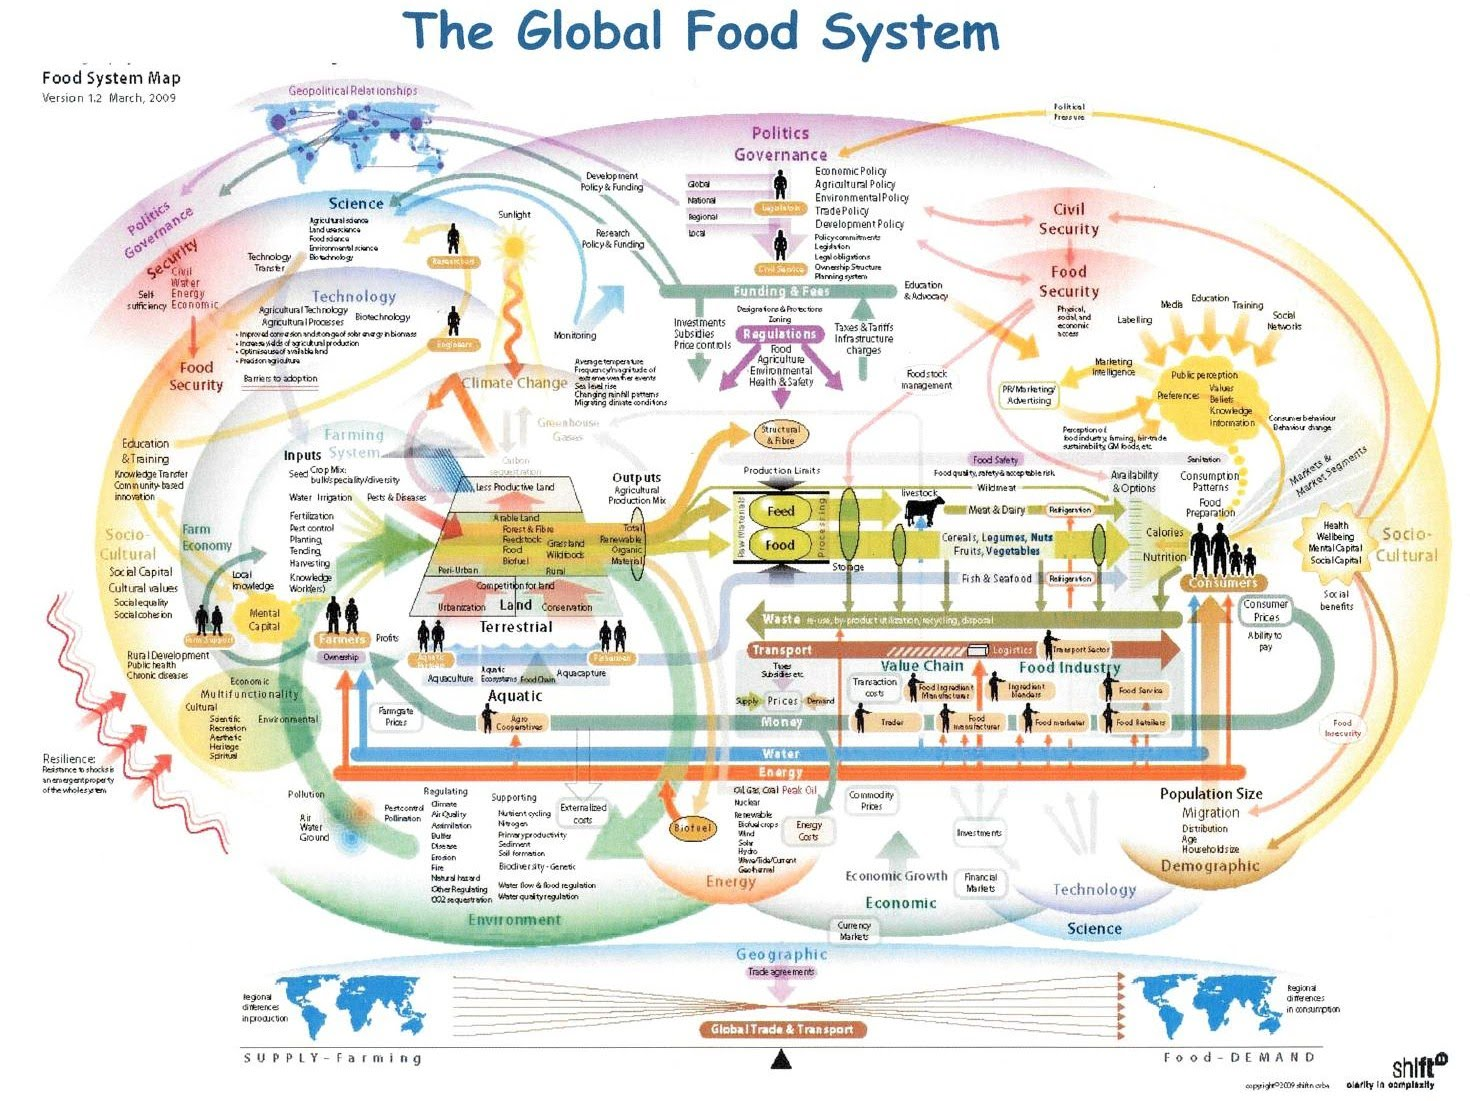 food system Food systems can be very complex from growing the food we eat, to processing, packaging, transportation and end sales, food can travel long miles to reach your plate.